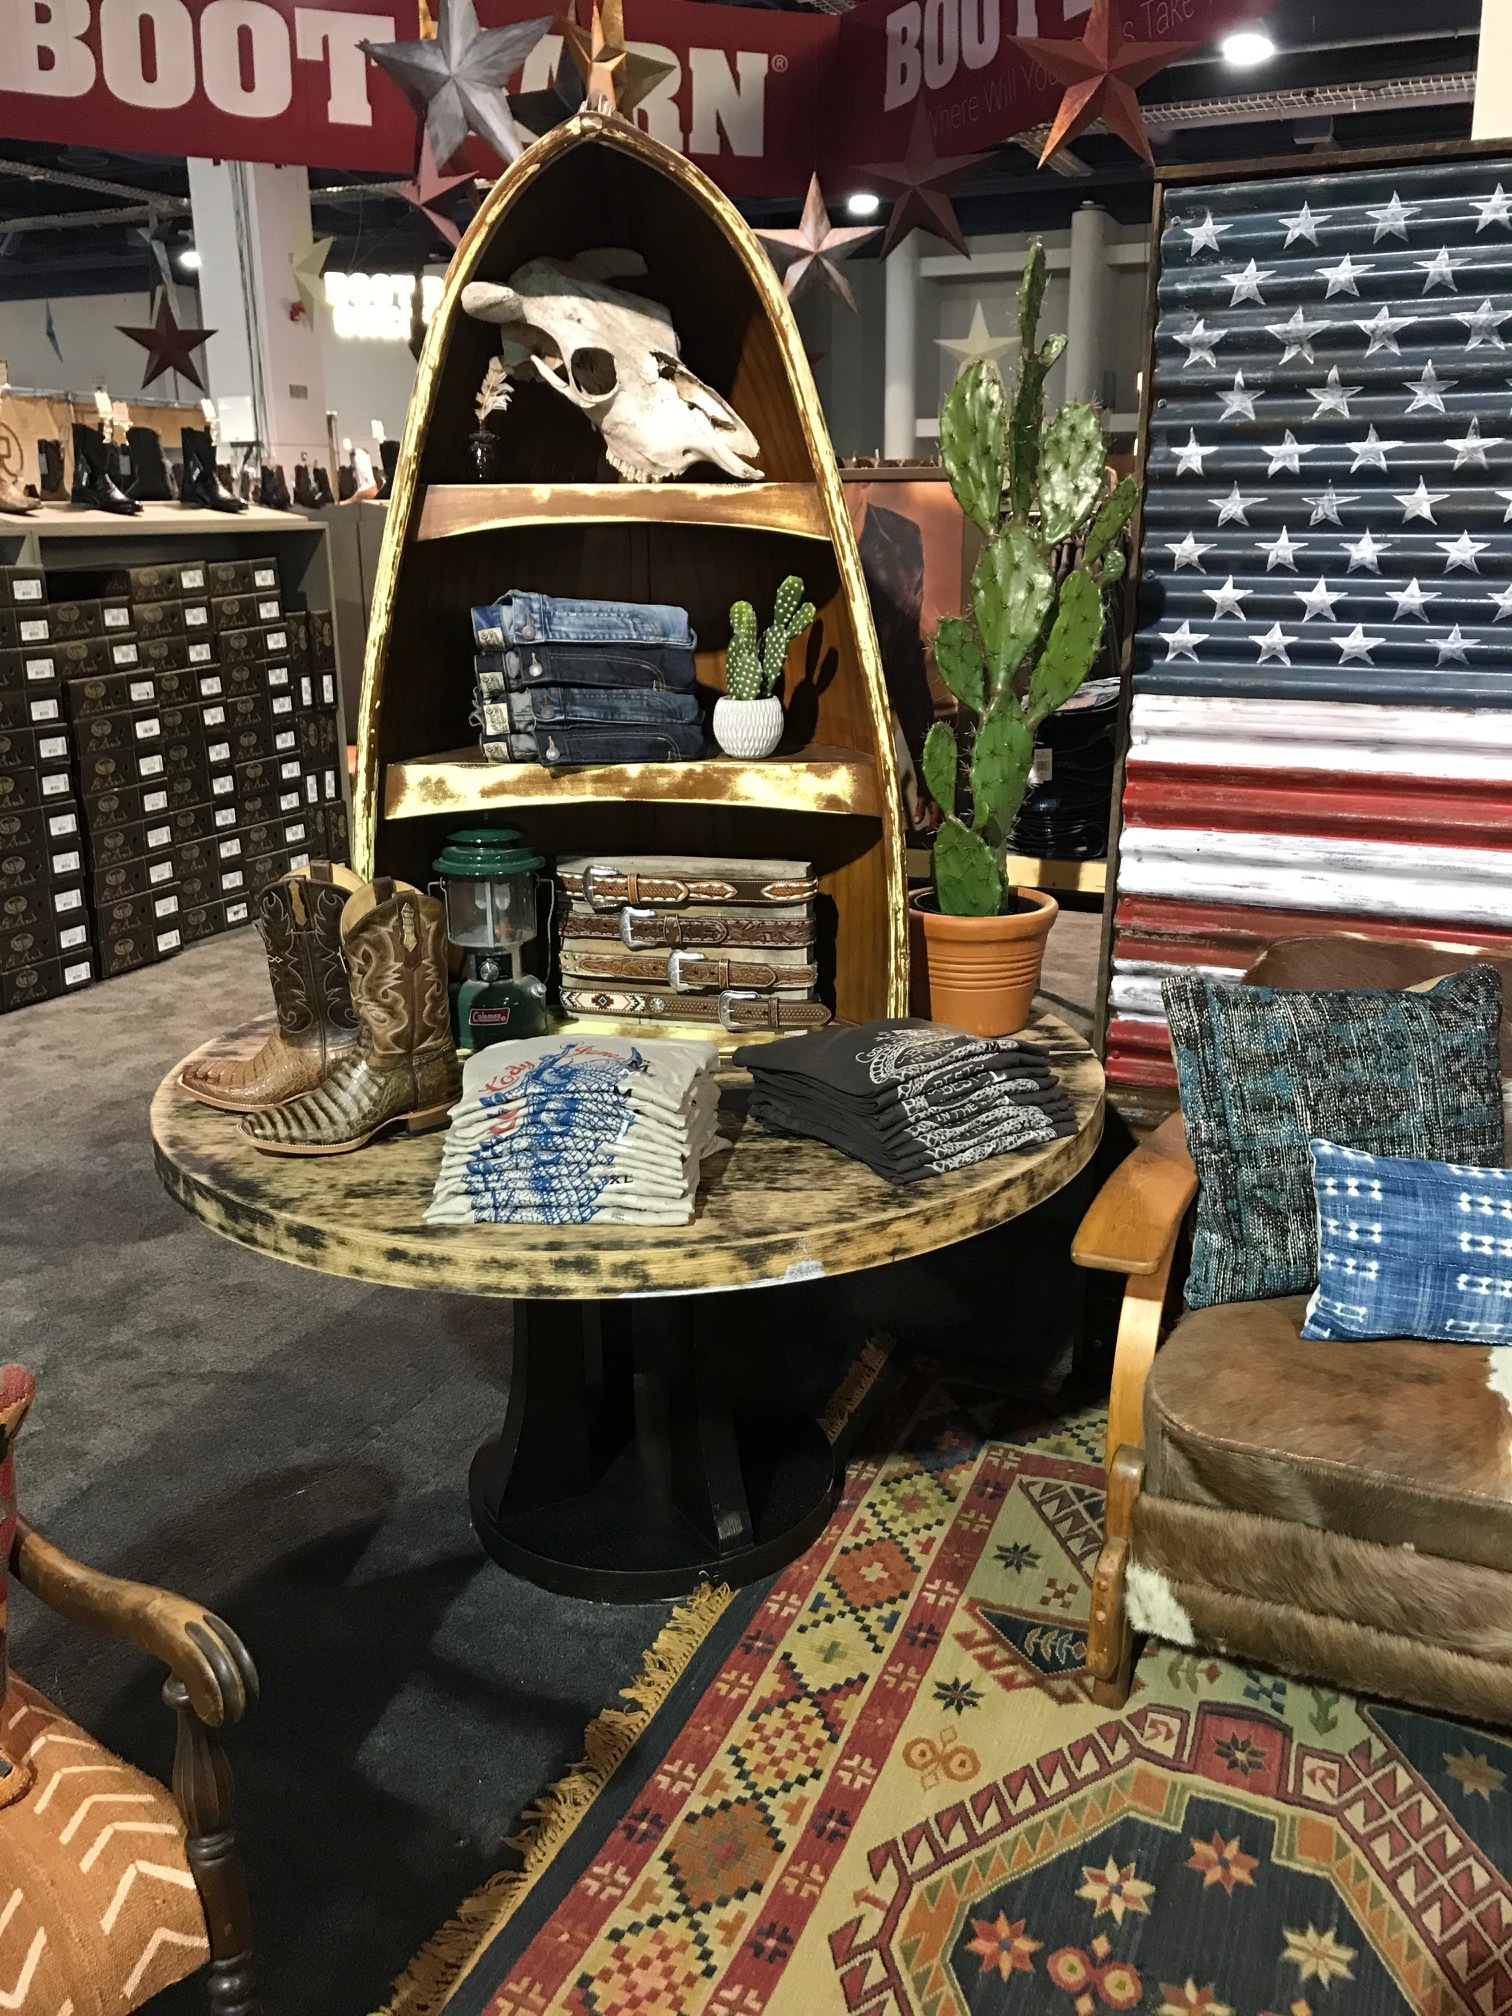 Custom built Southwestern Ralph Lauren inspired canoe table retail display for expo center build out at the National Finals Rodeo Cowboy Christmas